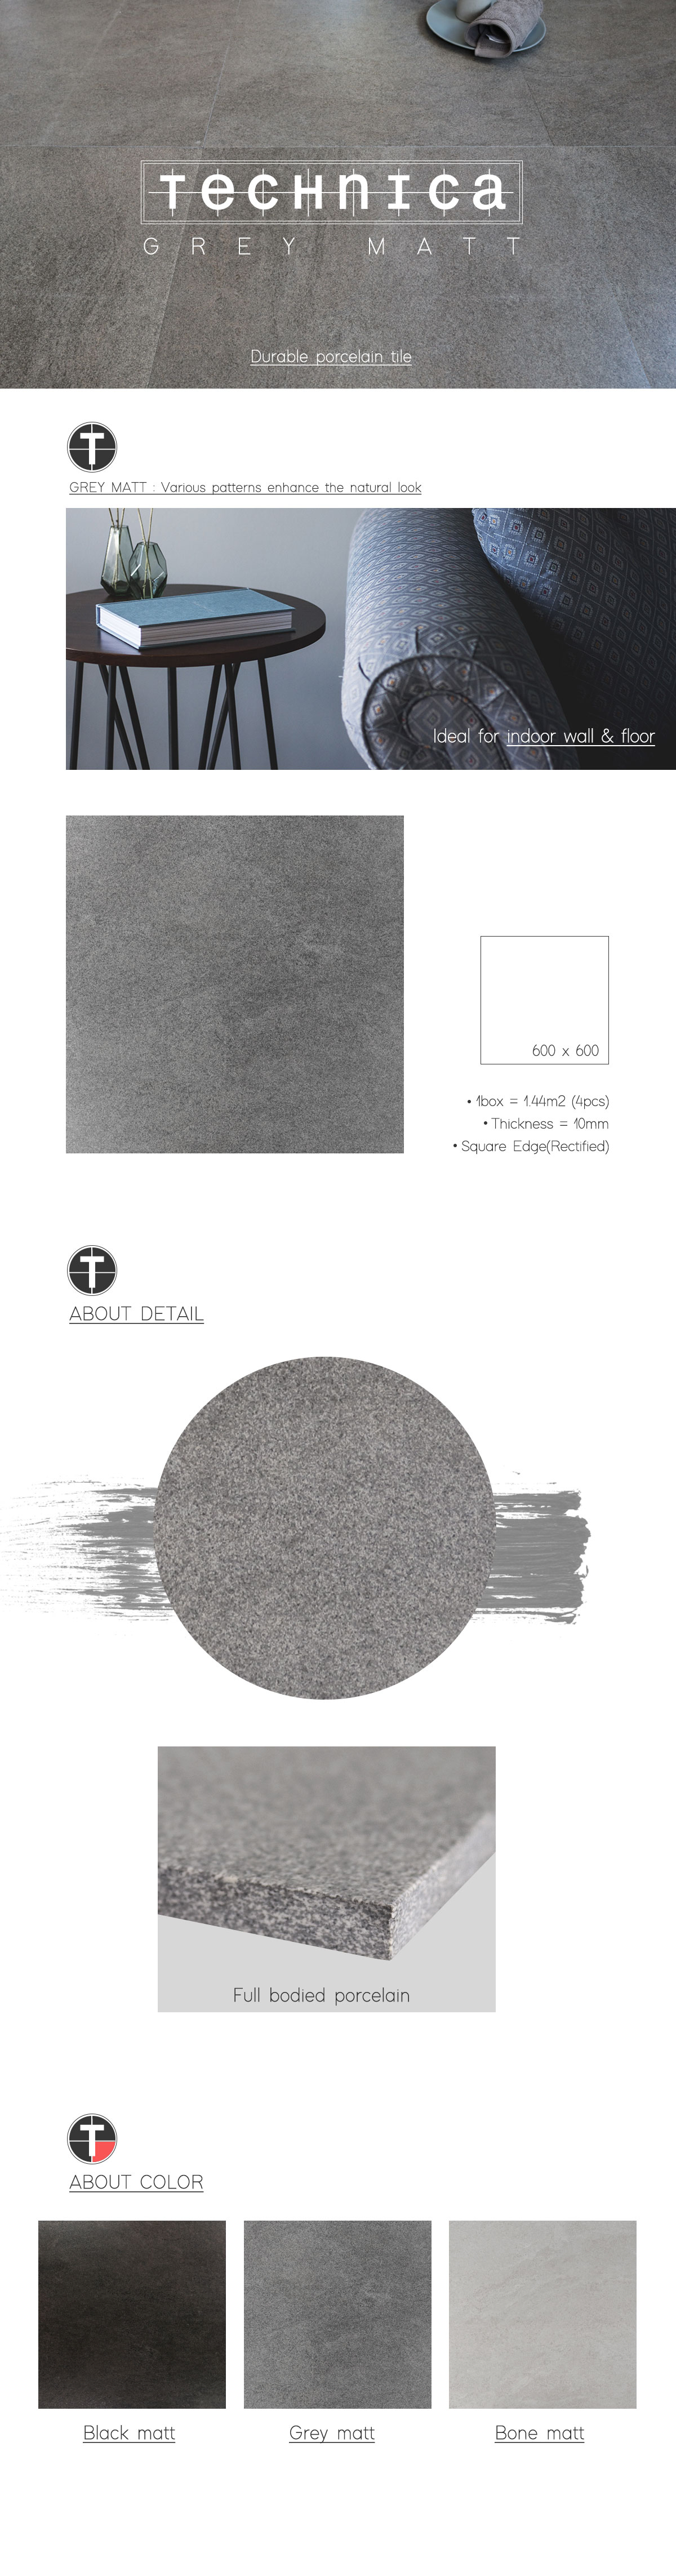 technica-grey-matt-_-pagedesign